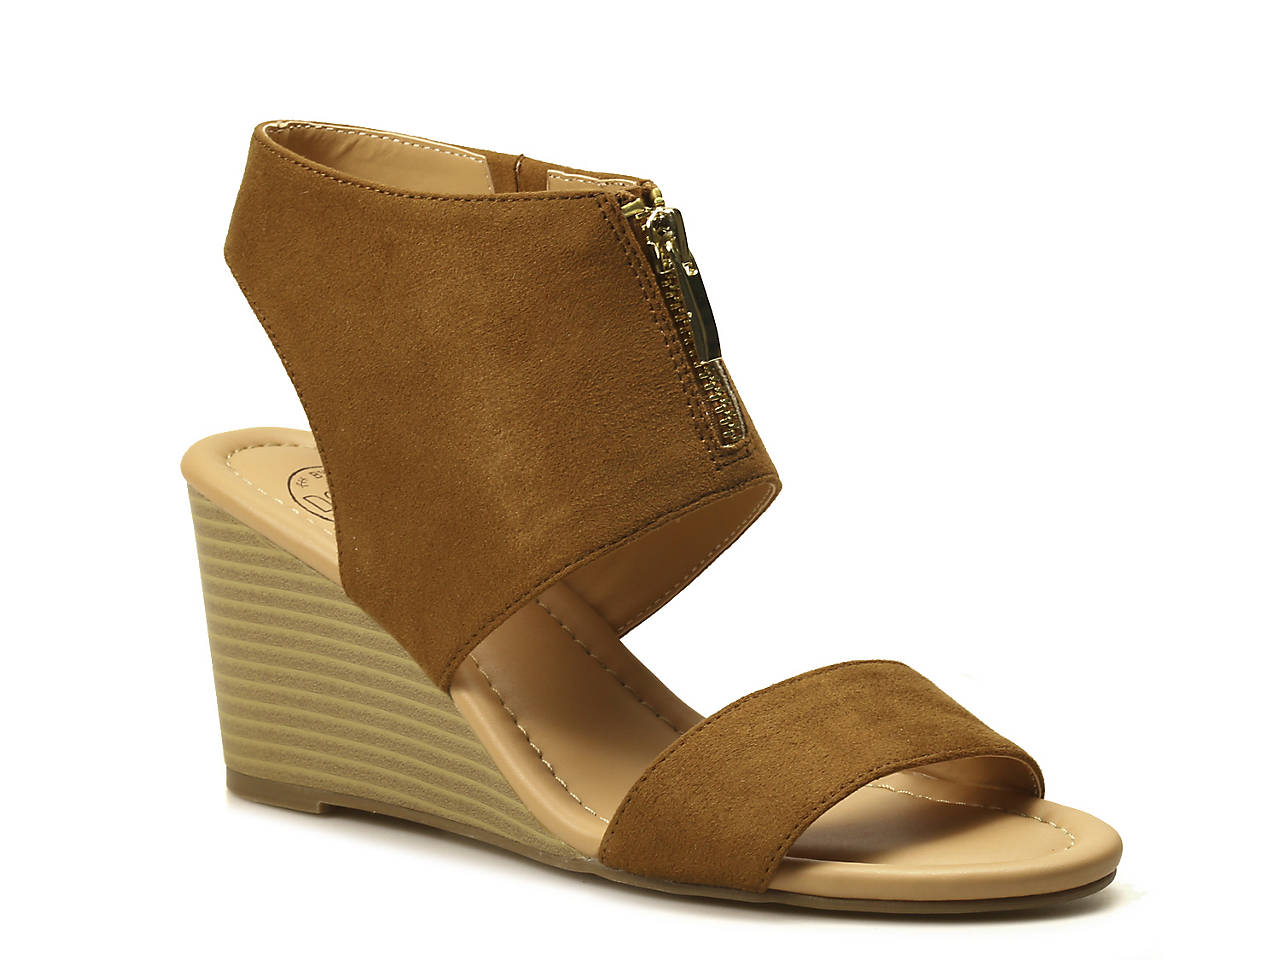 79f261ec894fb Dolce by Mojo Moxy Alessia Wedge Sandal Women s Shoes